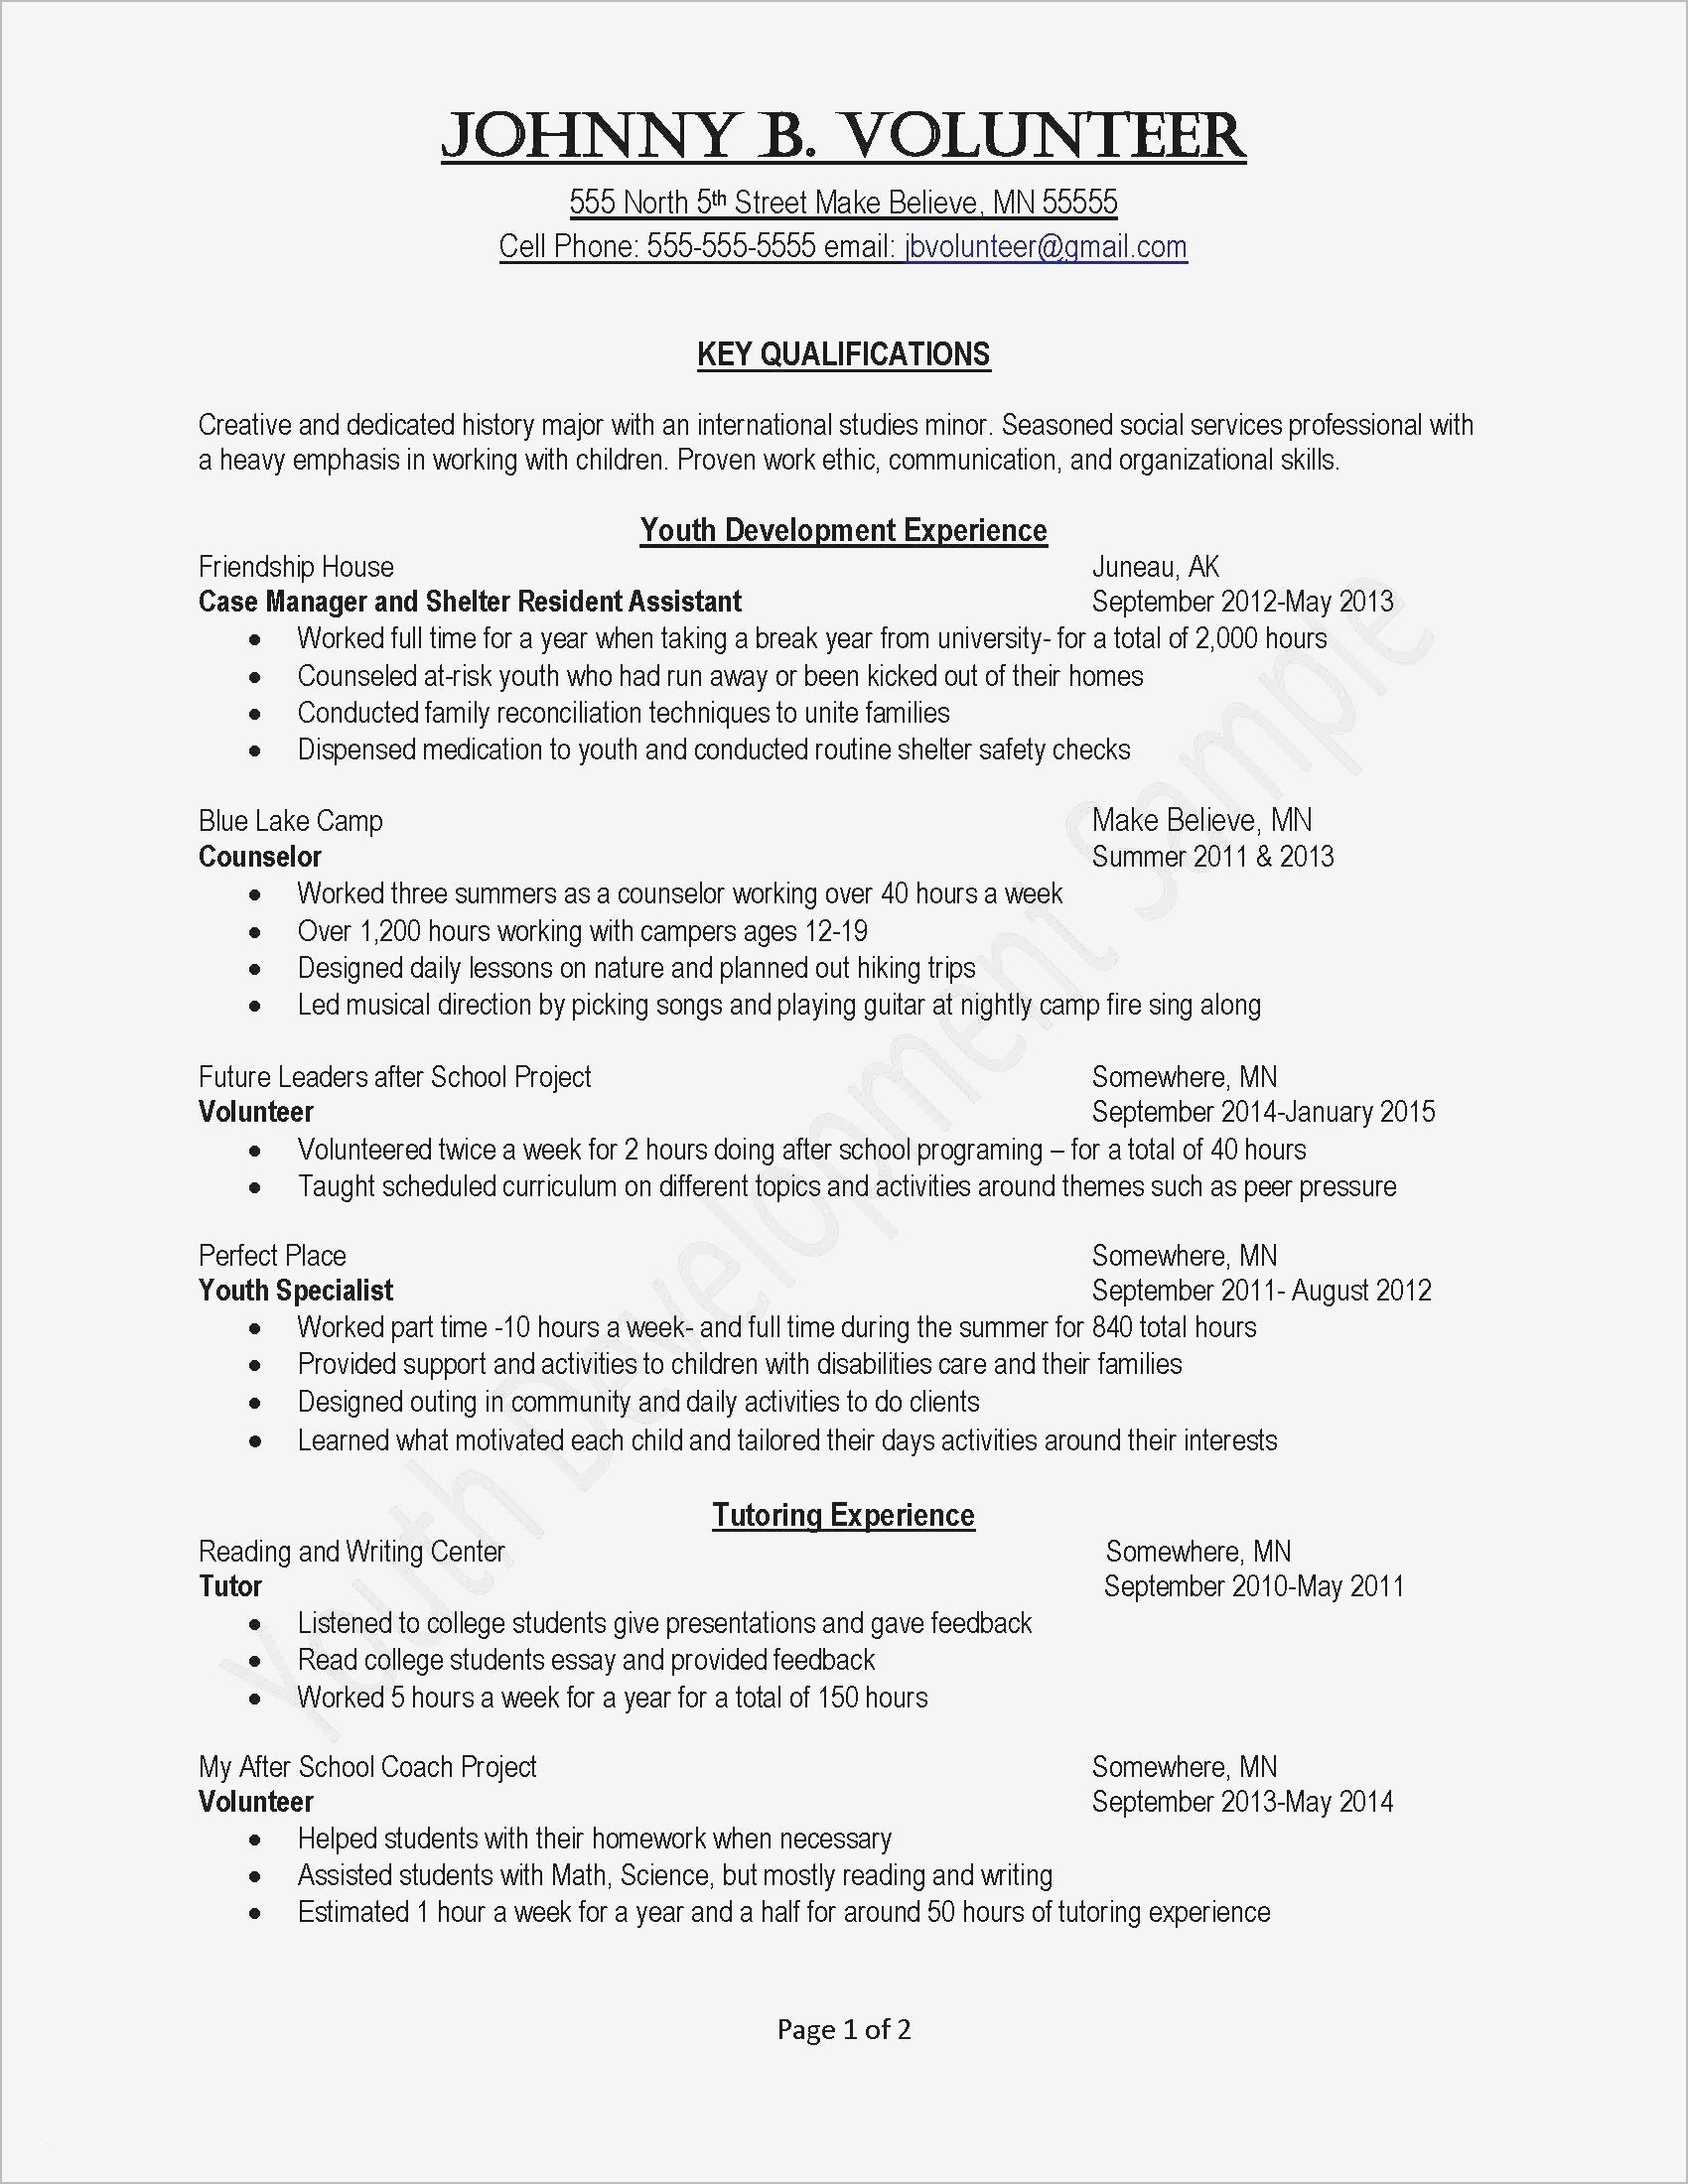 Fresh Free Printable Resume Templates Microsoft Word - Vcuregistry - Free Printable Lock Pick Templates